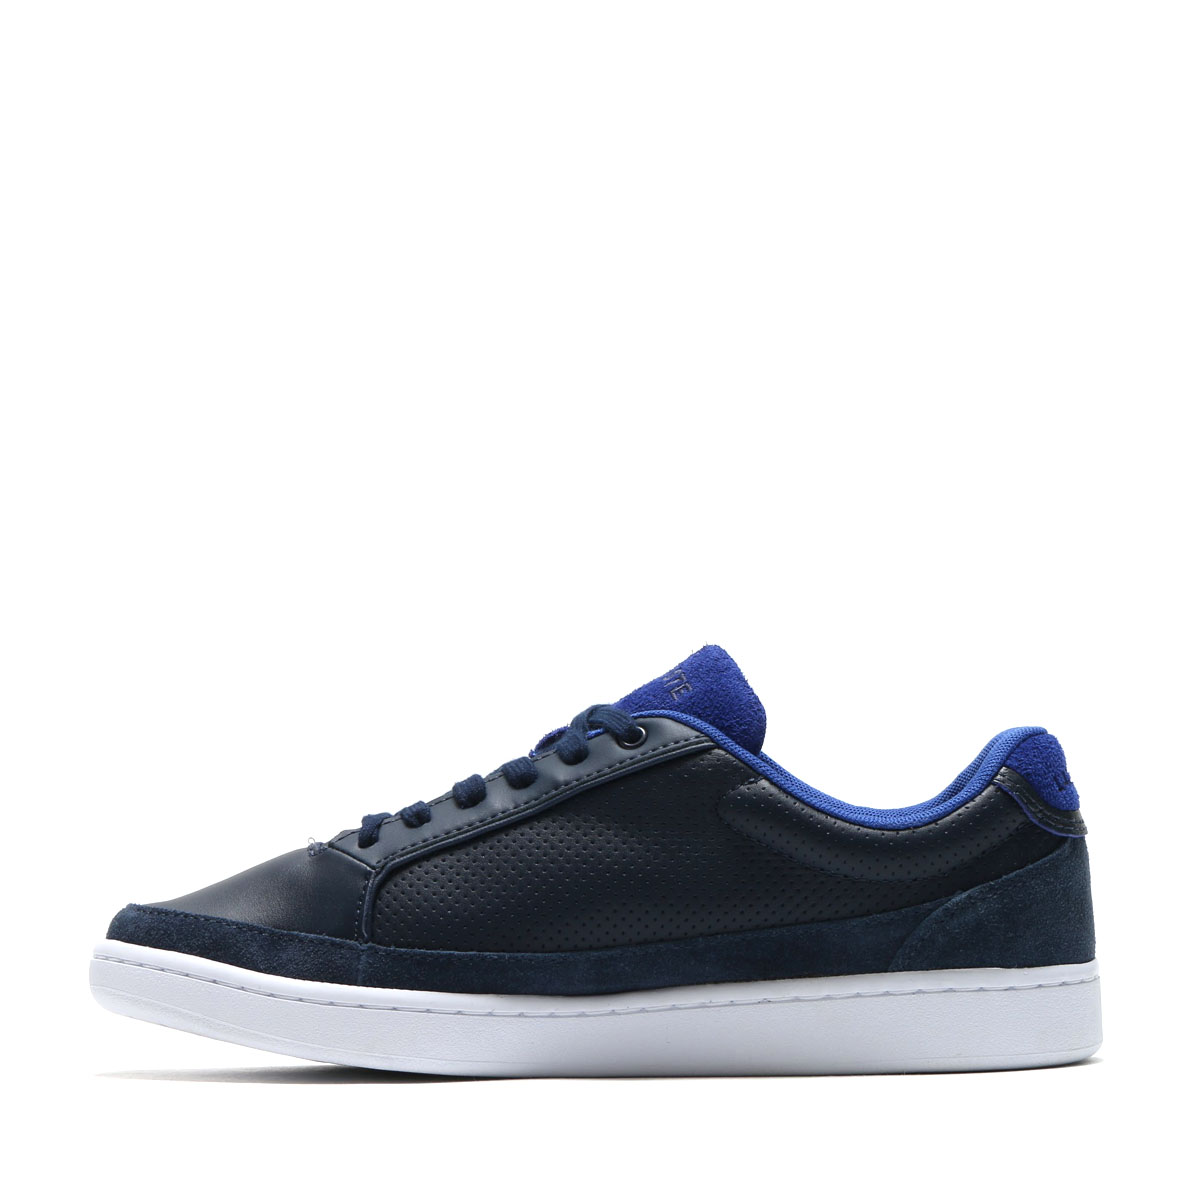 LACOSTE SETPLAY 117 1 (Lacoste set play 117 1) (NAVY) 17SS-I